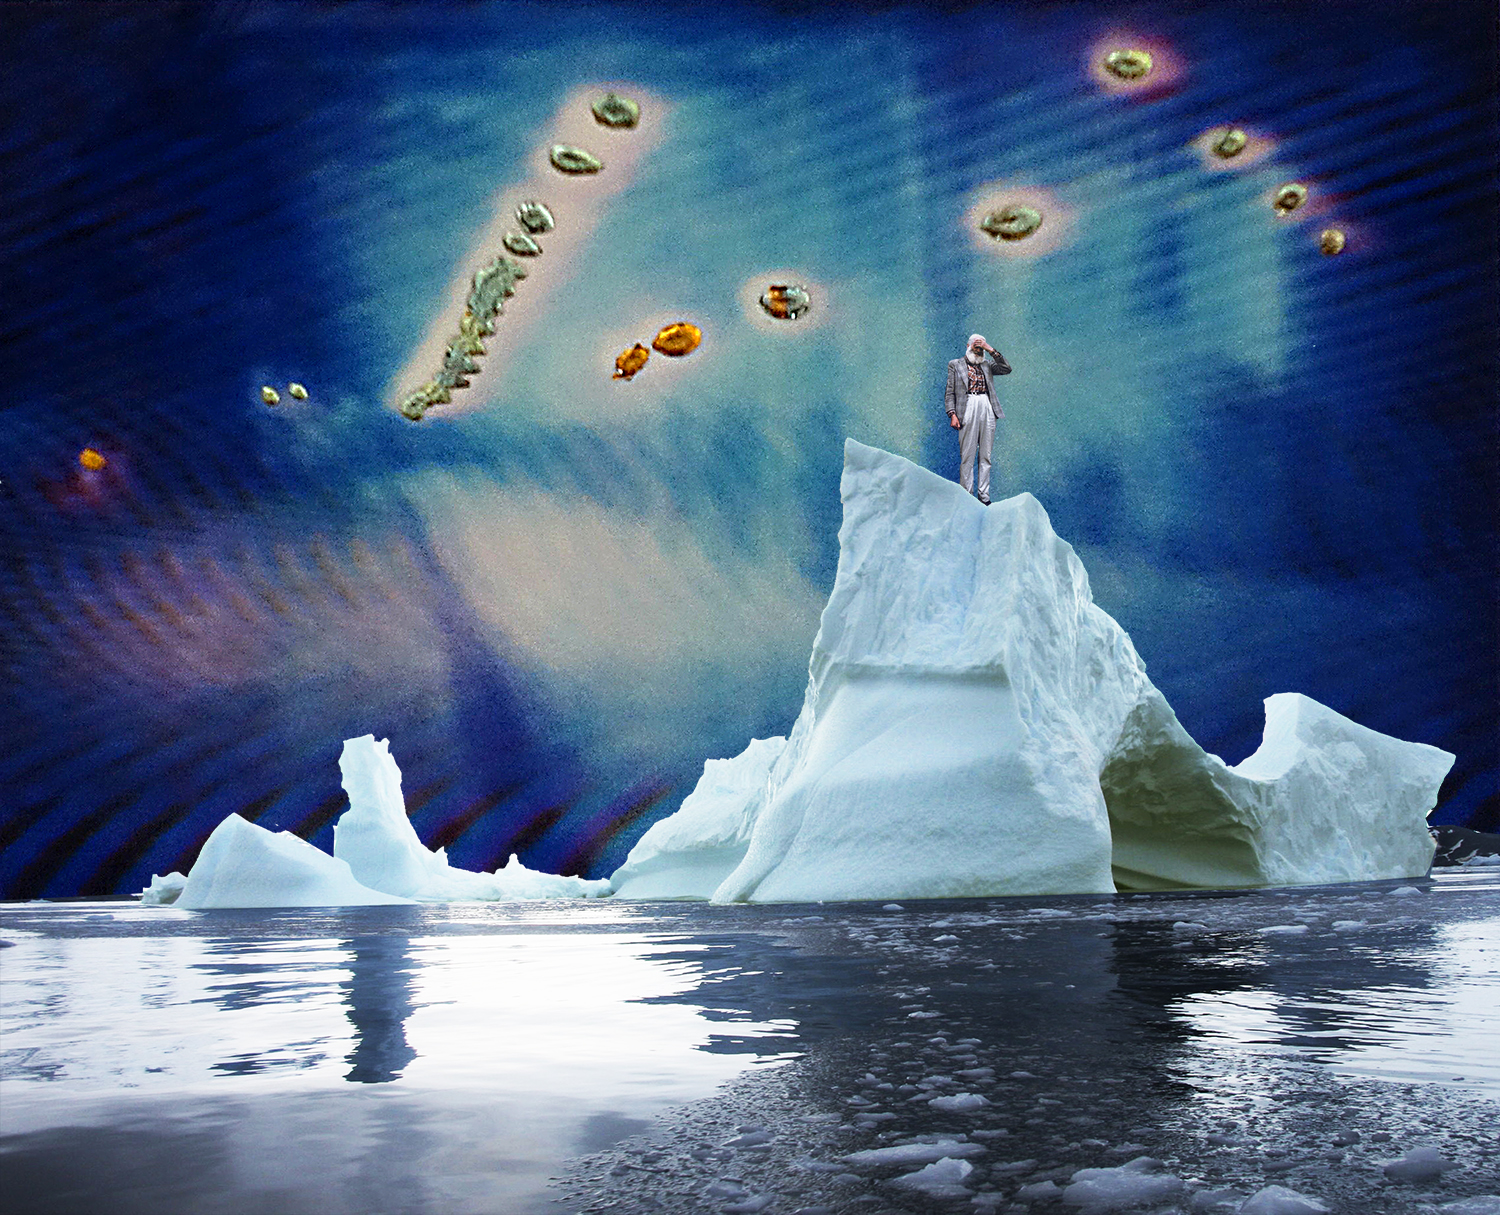 A digital collage of a person standing on top of melting ice under a blue sky and floating orbs of different colors. The iceberg is peaking up from reflective water.